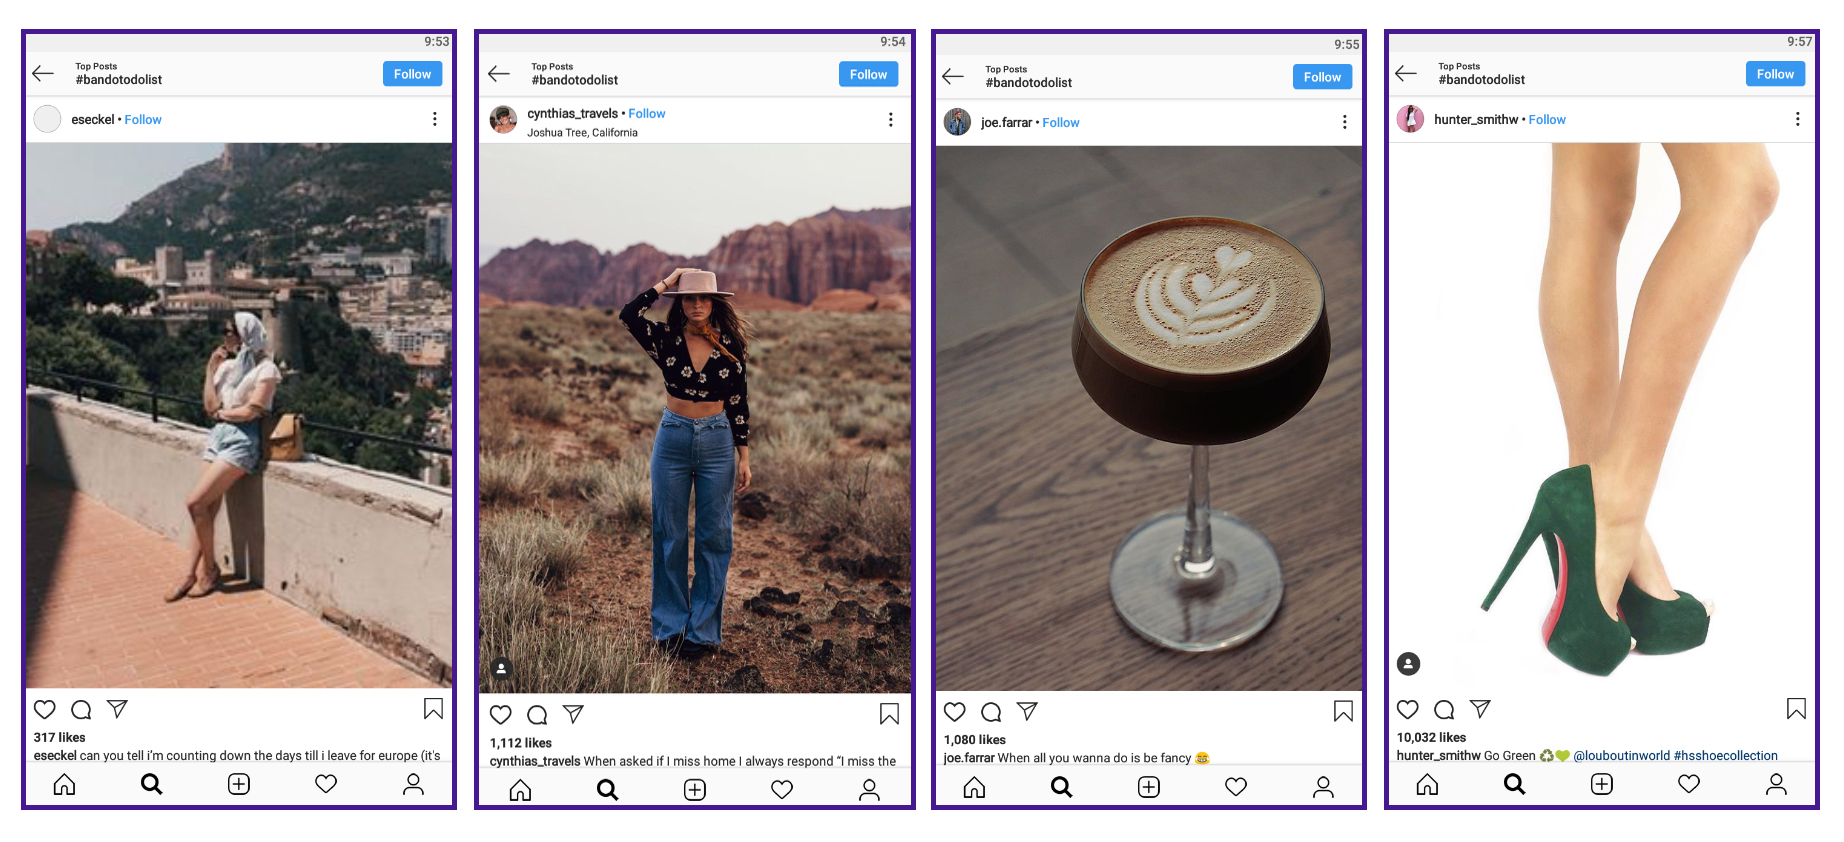 What-Makes-A-Top-Post-On-Instagram